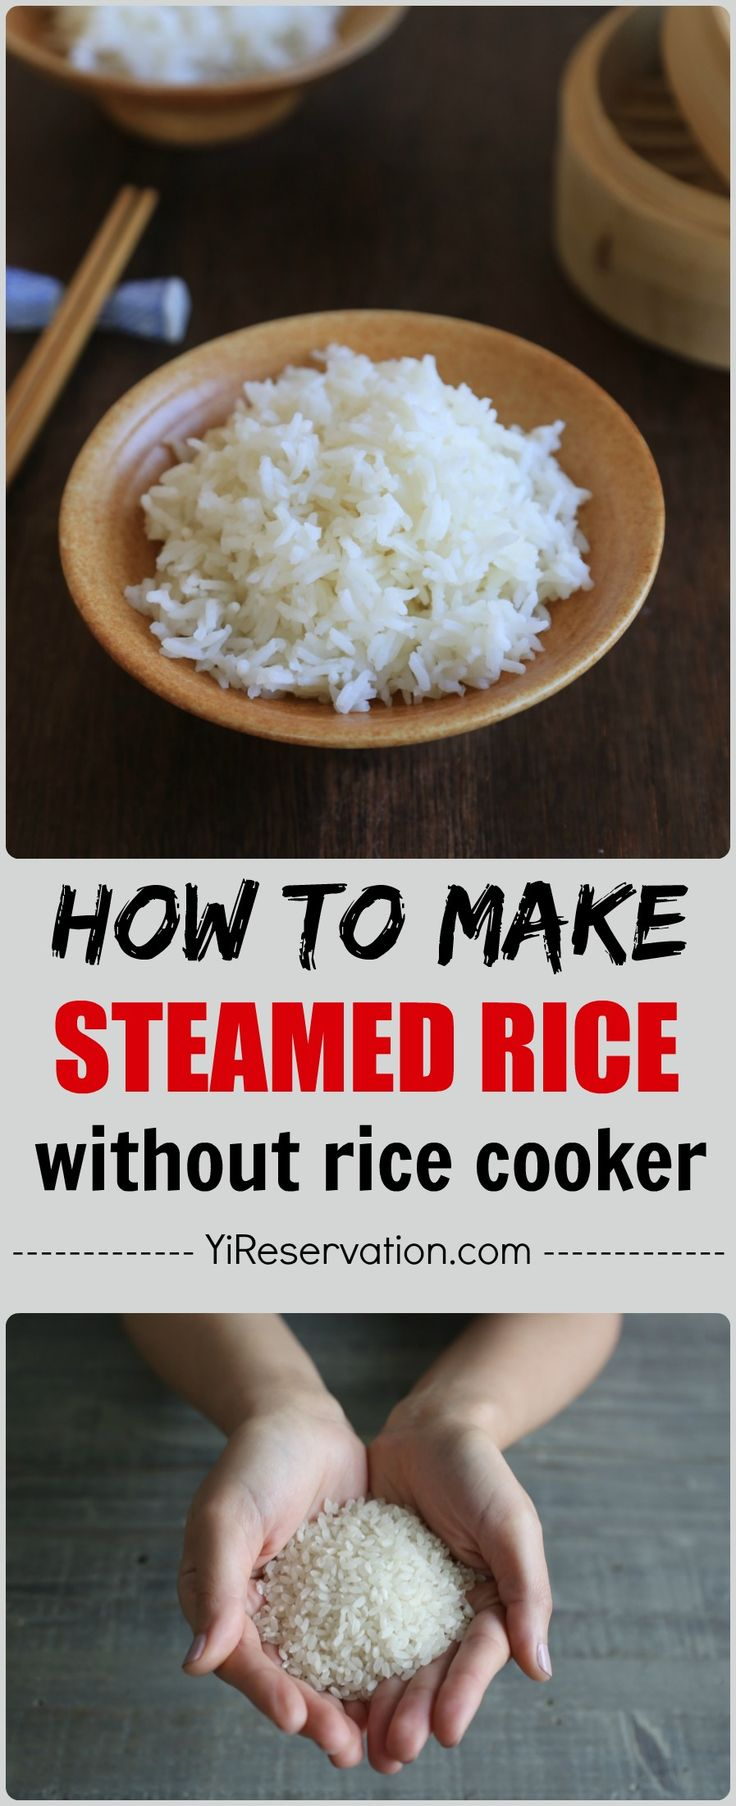 Chinese Cooking 101: easy to follow recipe showing you how to make perfect and consistent steamed rice on without a rice cooker (stove top method)